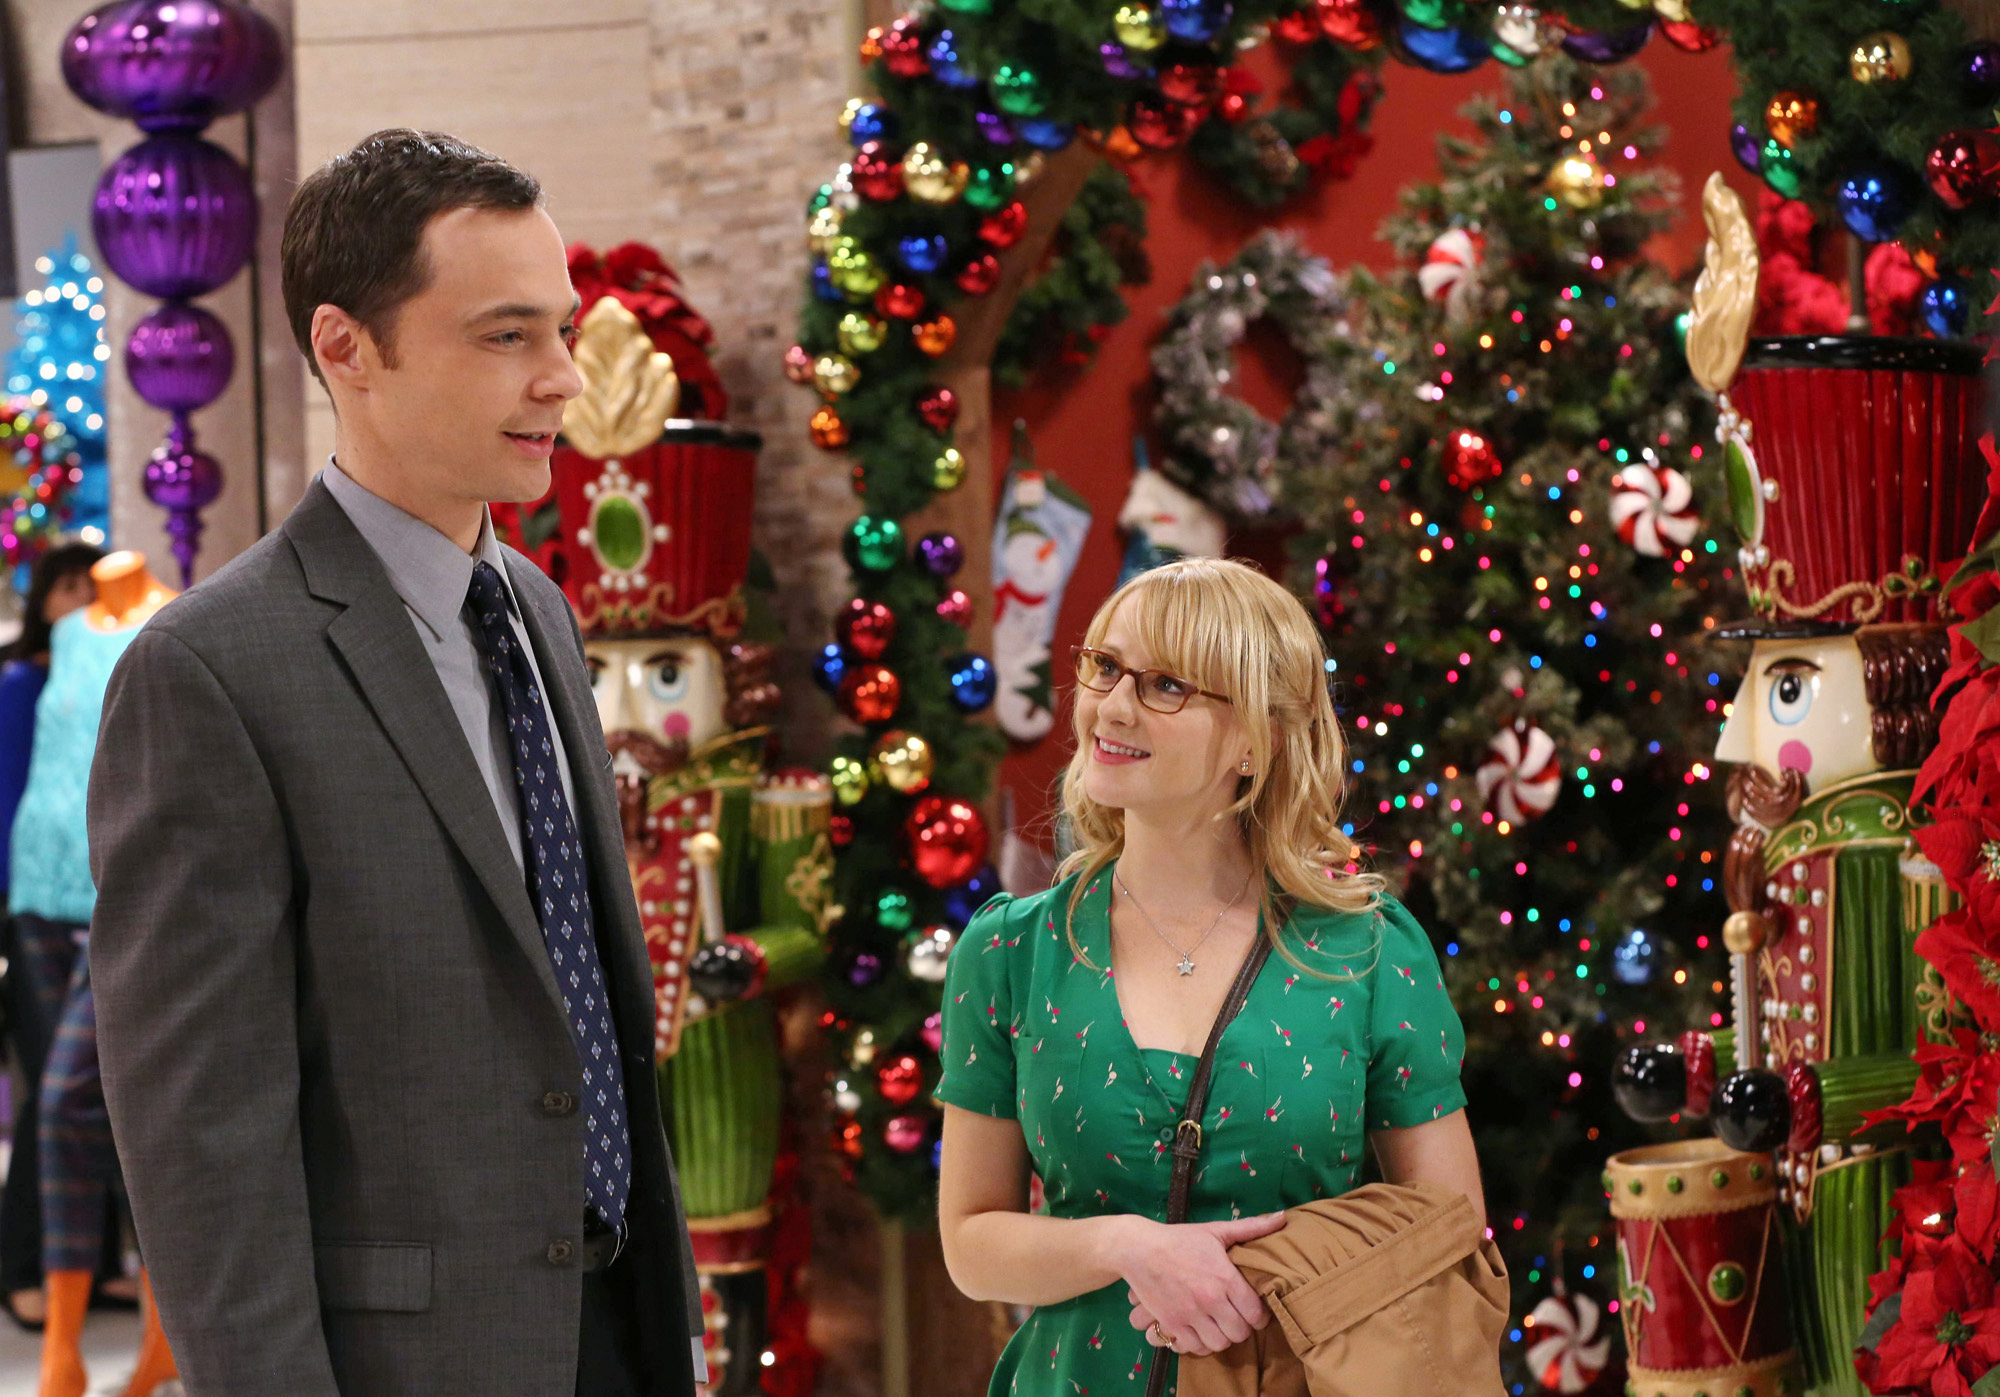 Sheldon and Bernadette